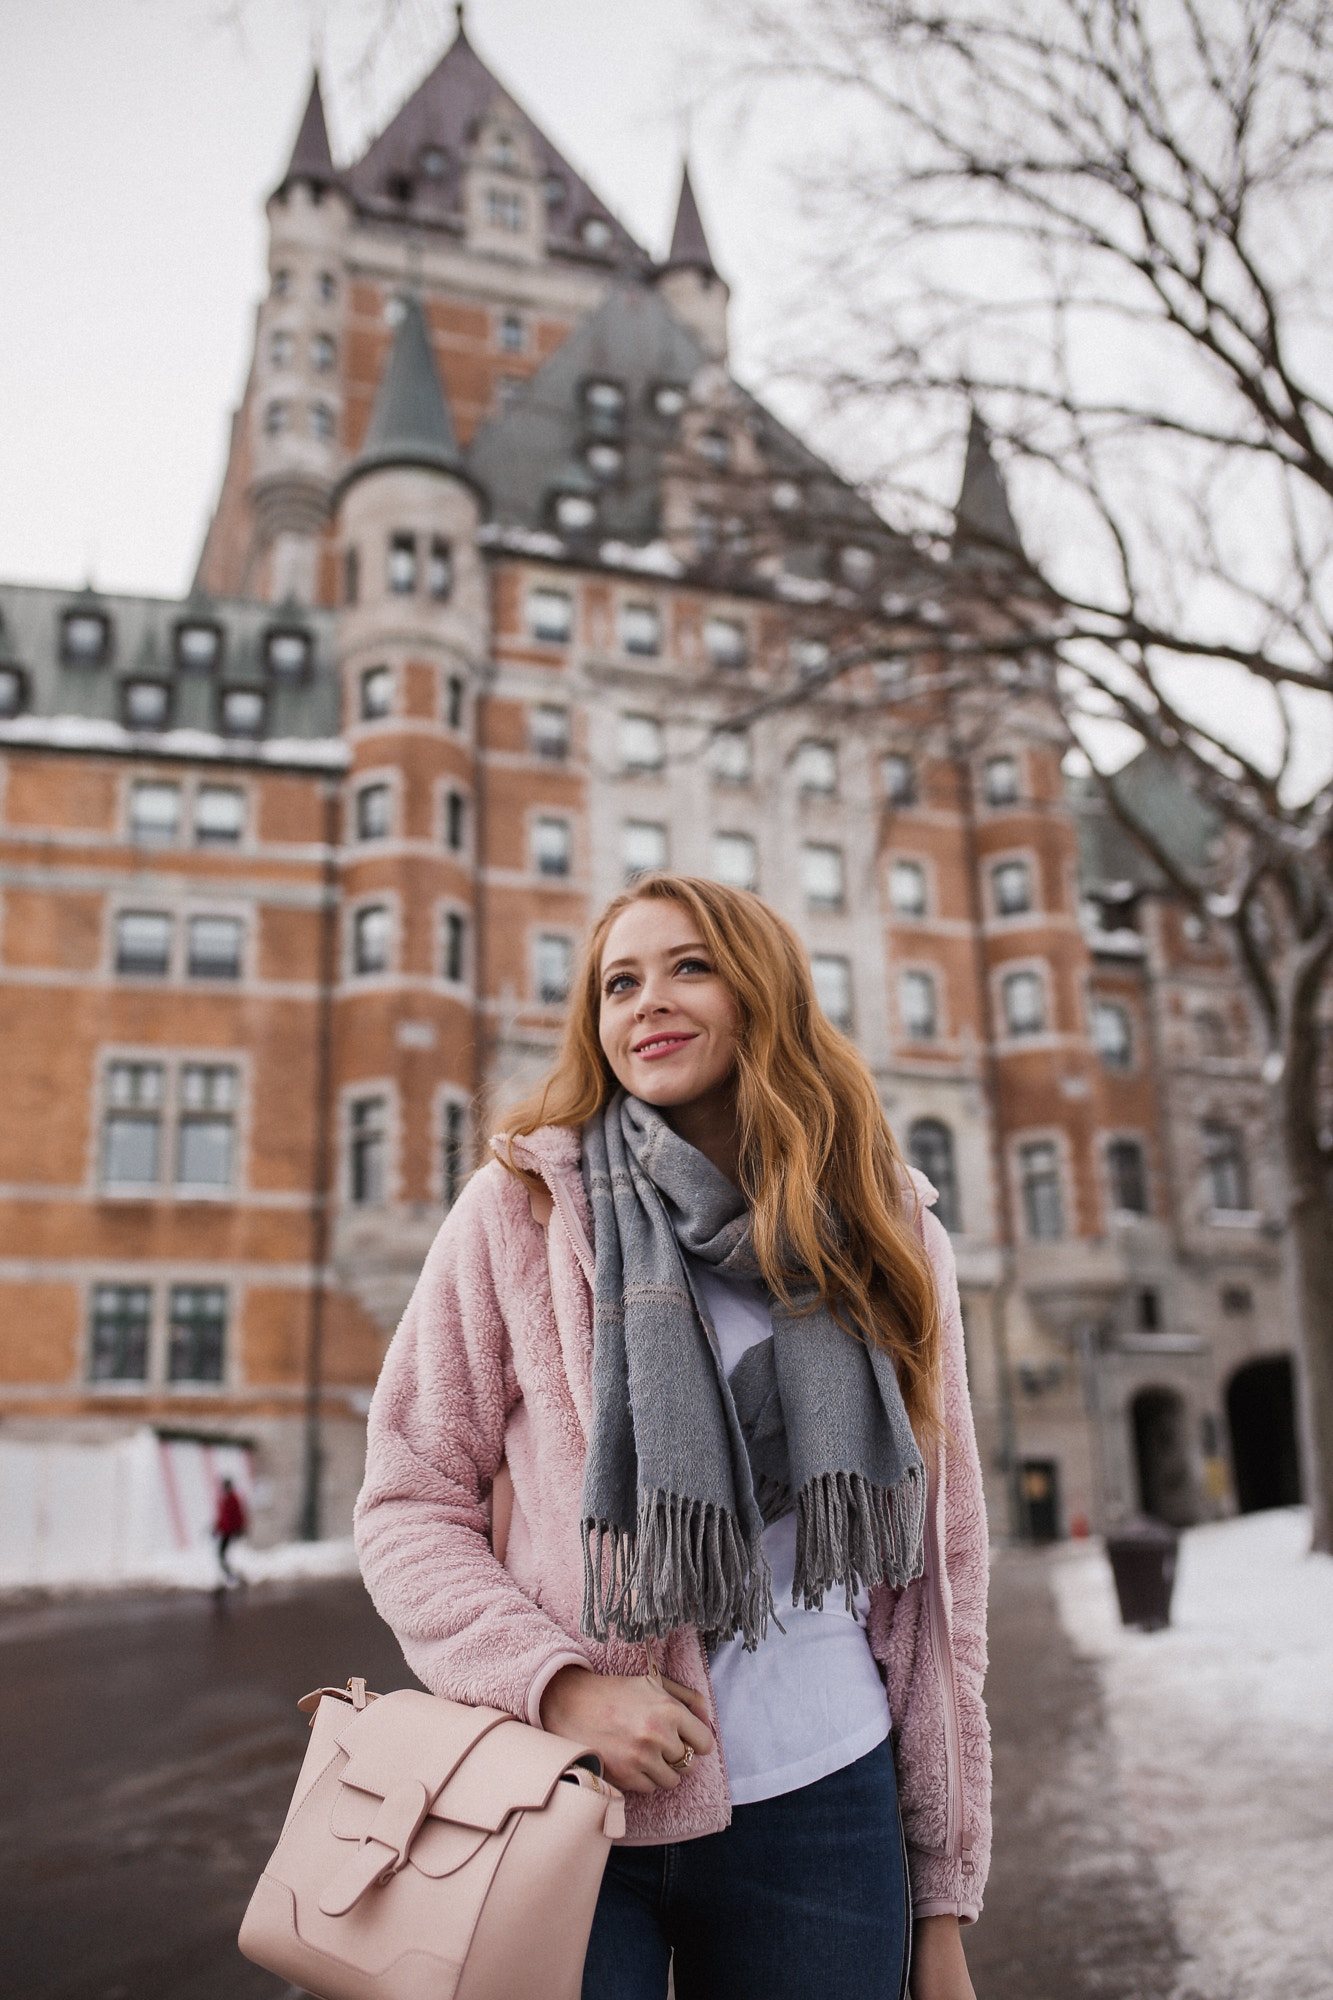 10 things to do in Quebec City - visit Chateau Frontenac, the chic luxury hotel that's also the most photographed hotel in the world.